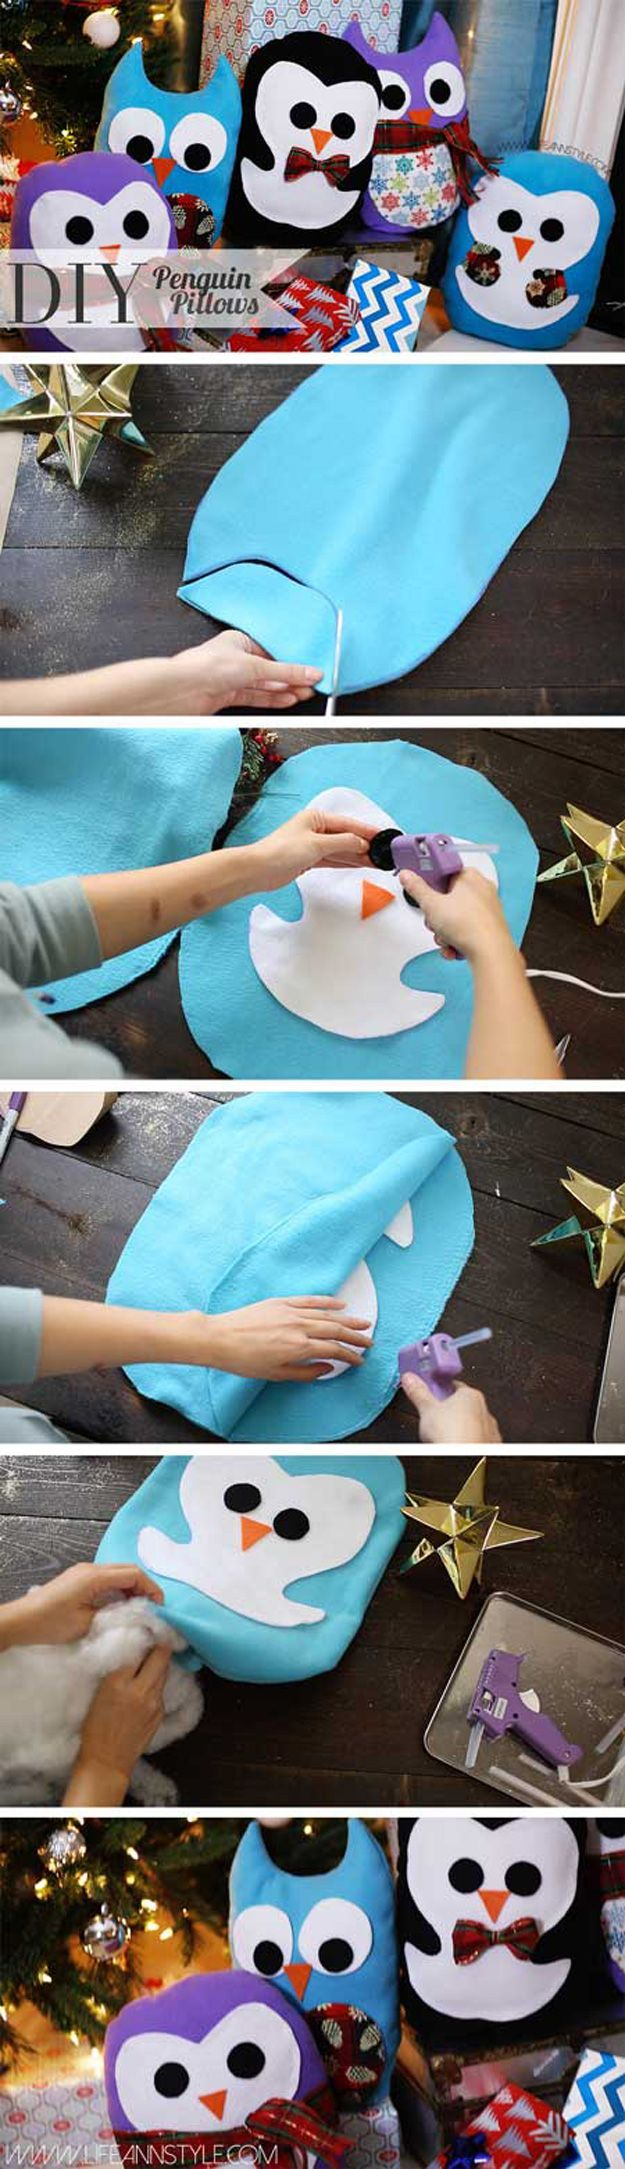 Adorable decorative pillow ideas children s penguins and decoration 17 adorable diy pillow ideas to sew yourself these cute little penguins would make great solutioingenieria Gallery